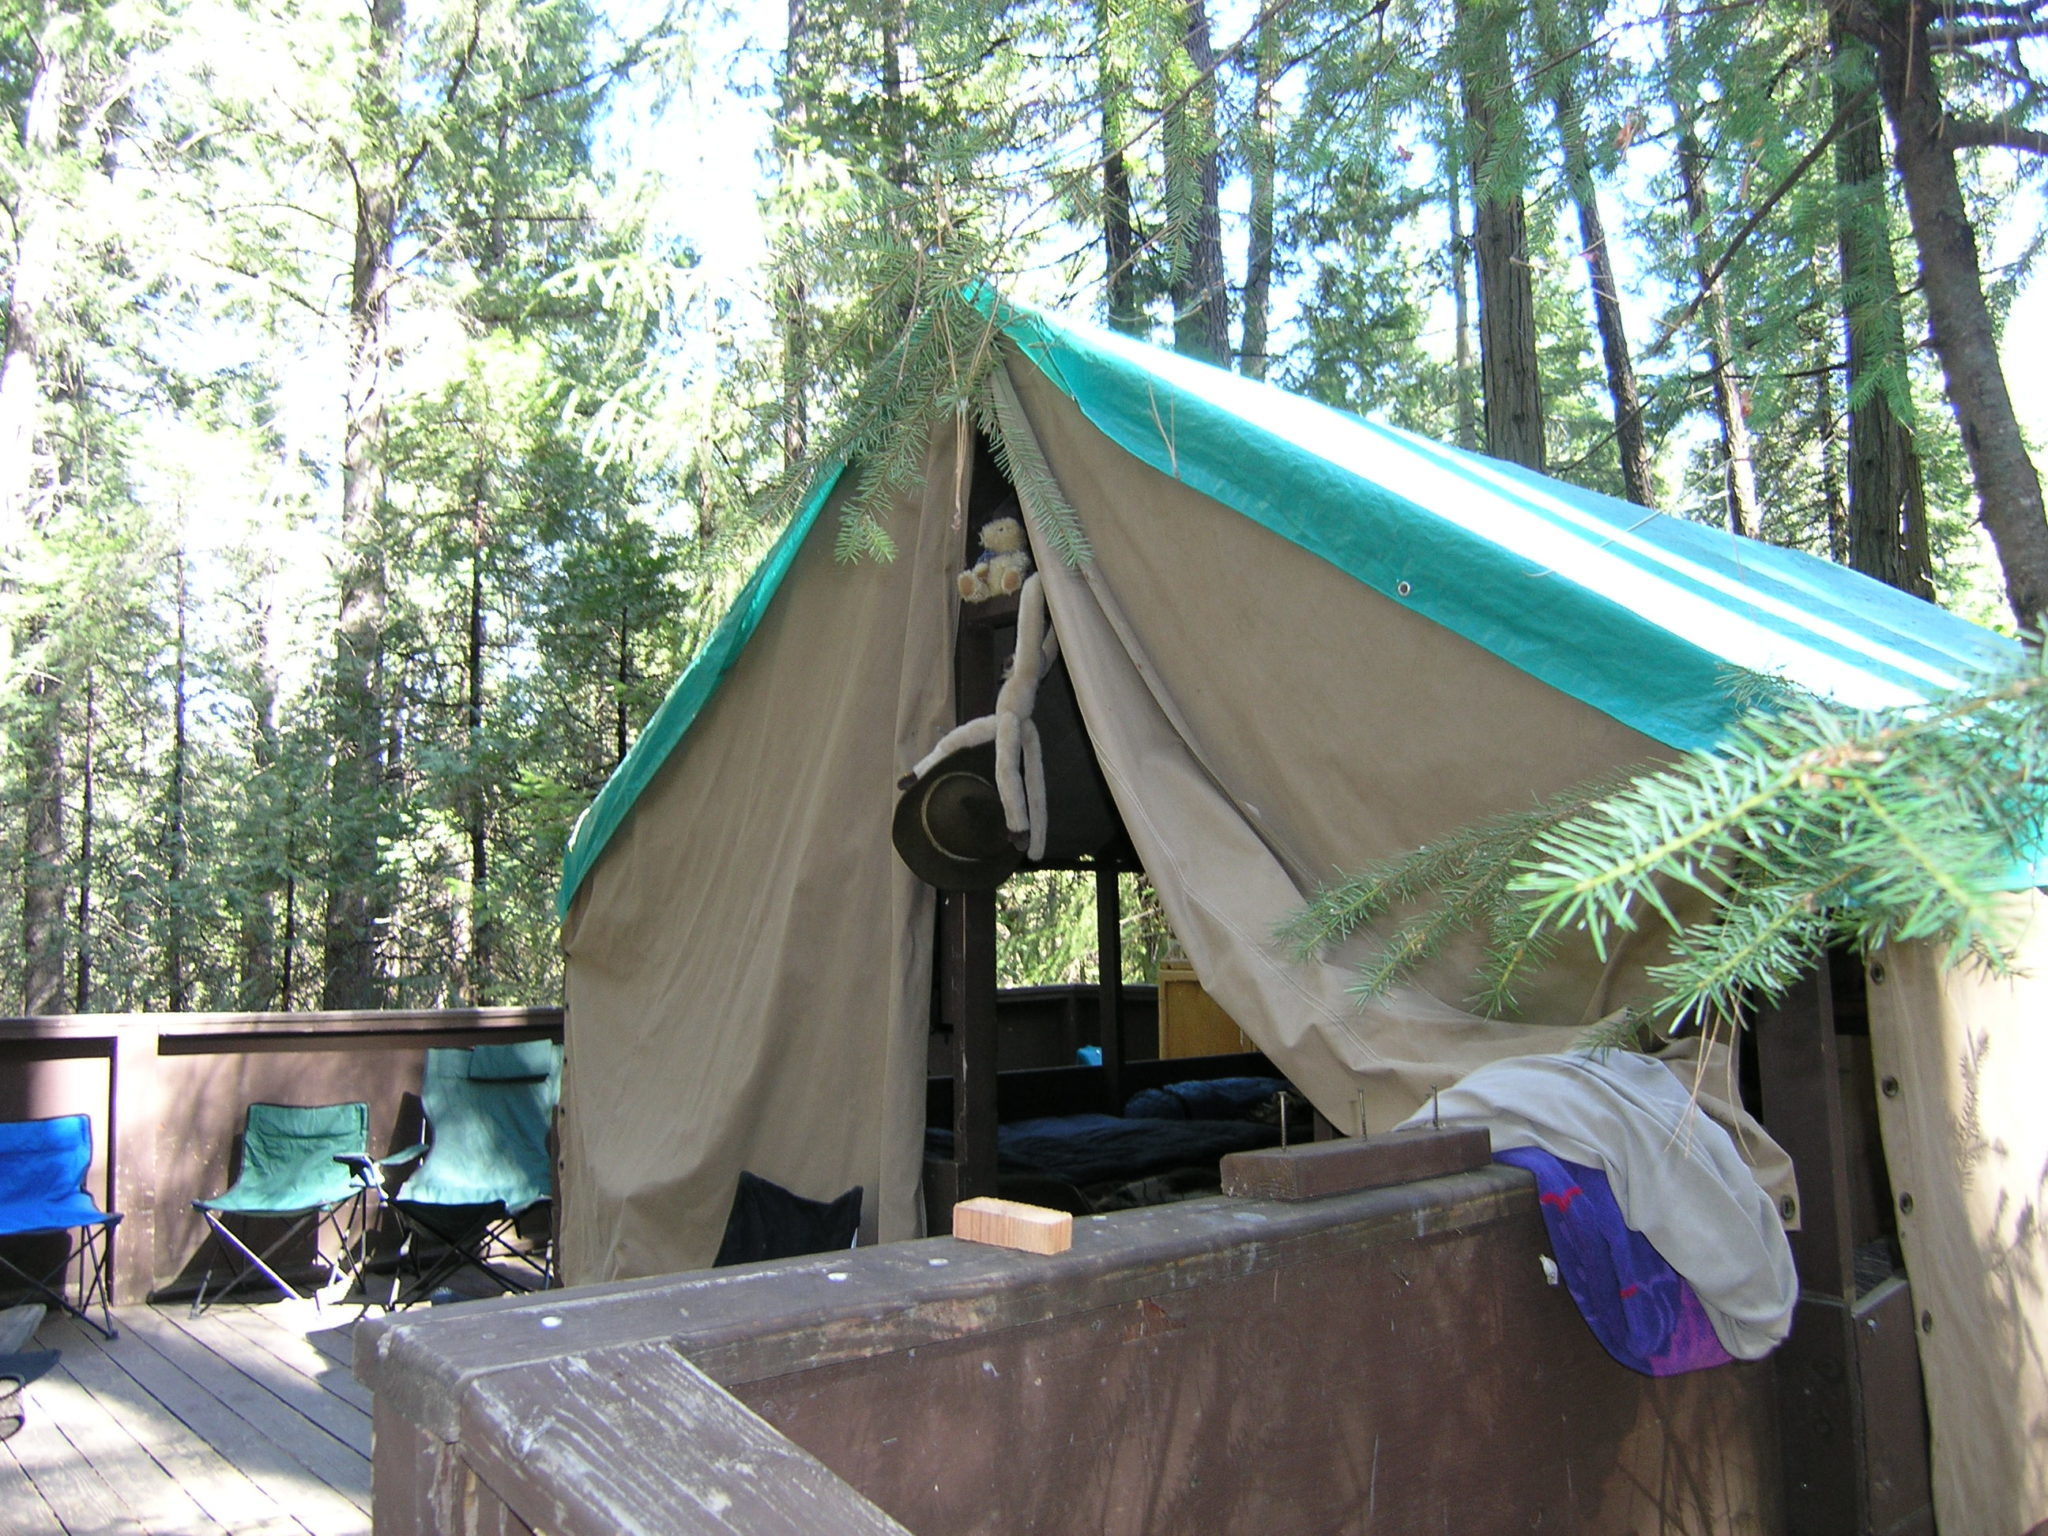 Tent Cabin in Pines, too tight ring story